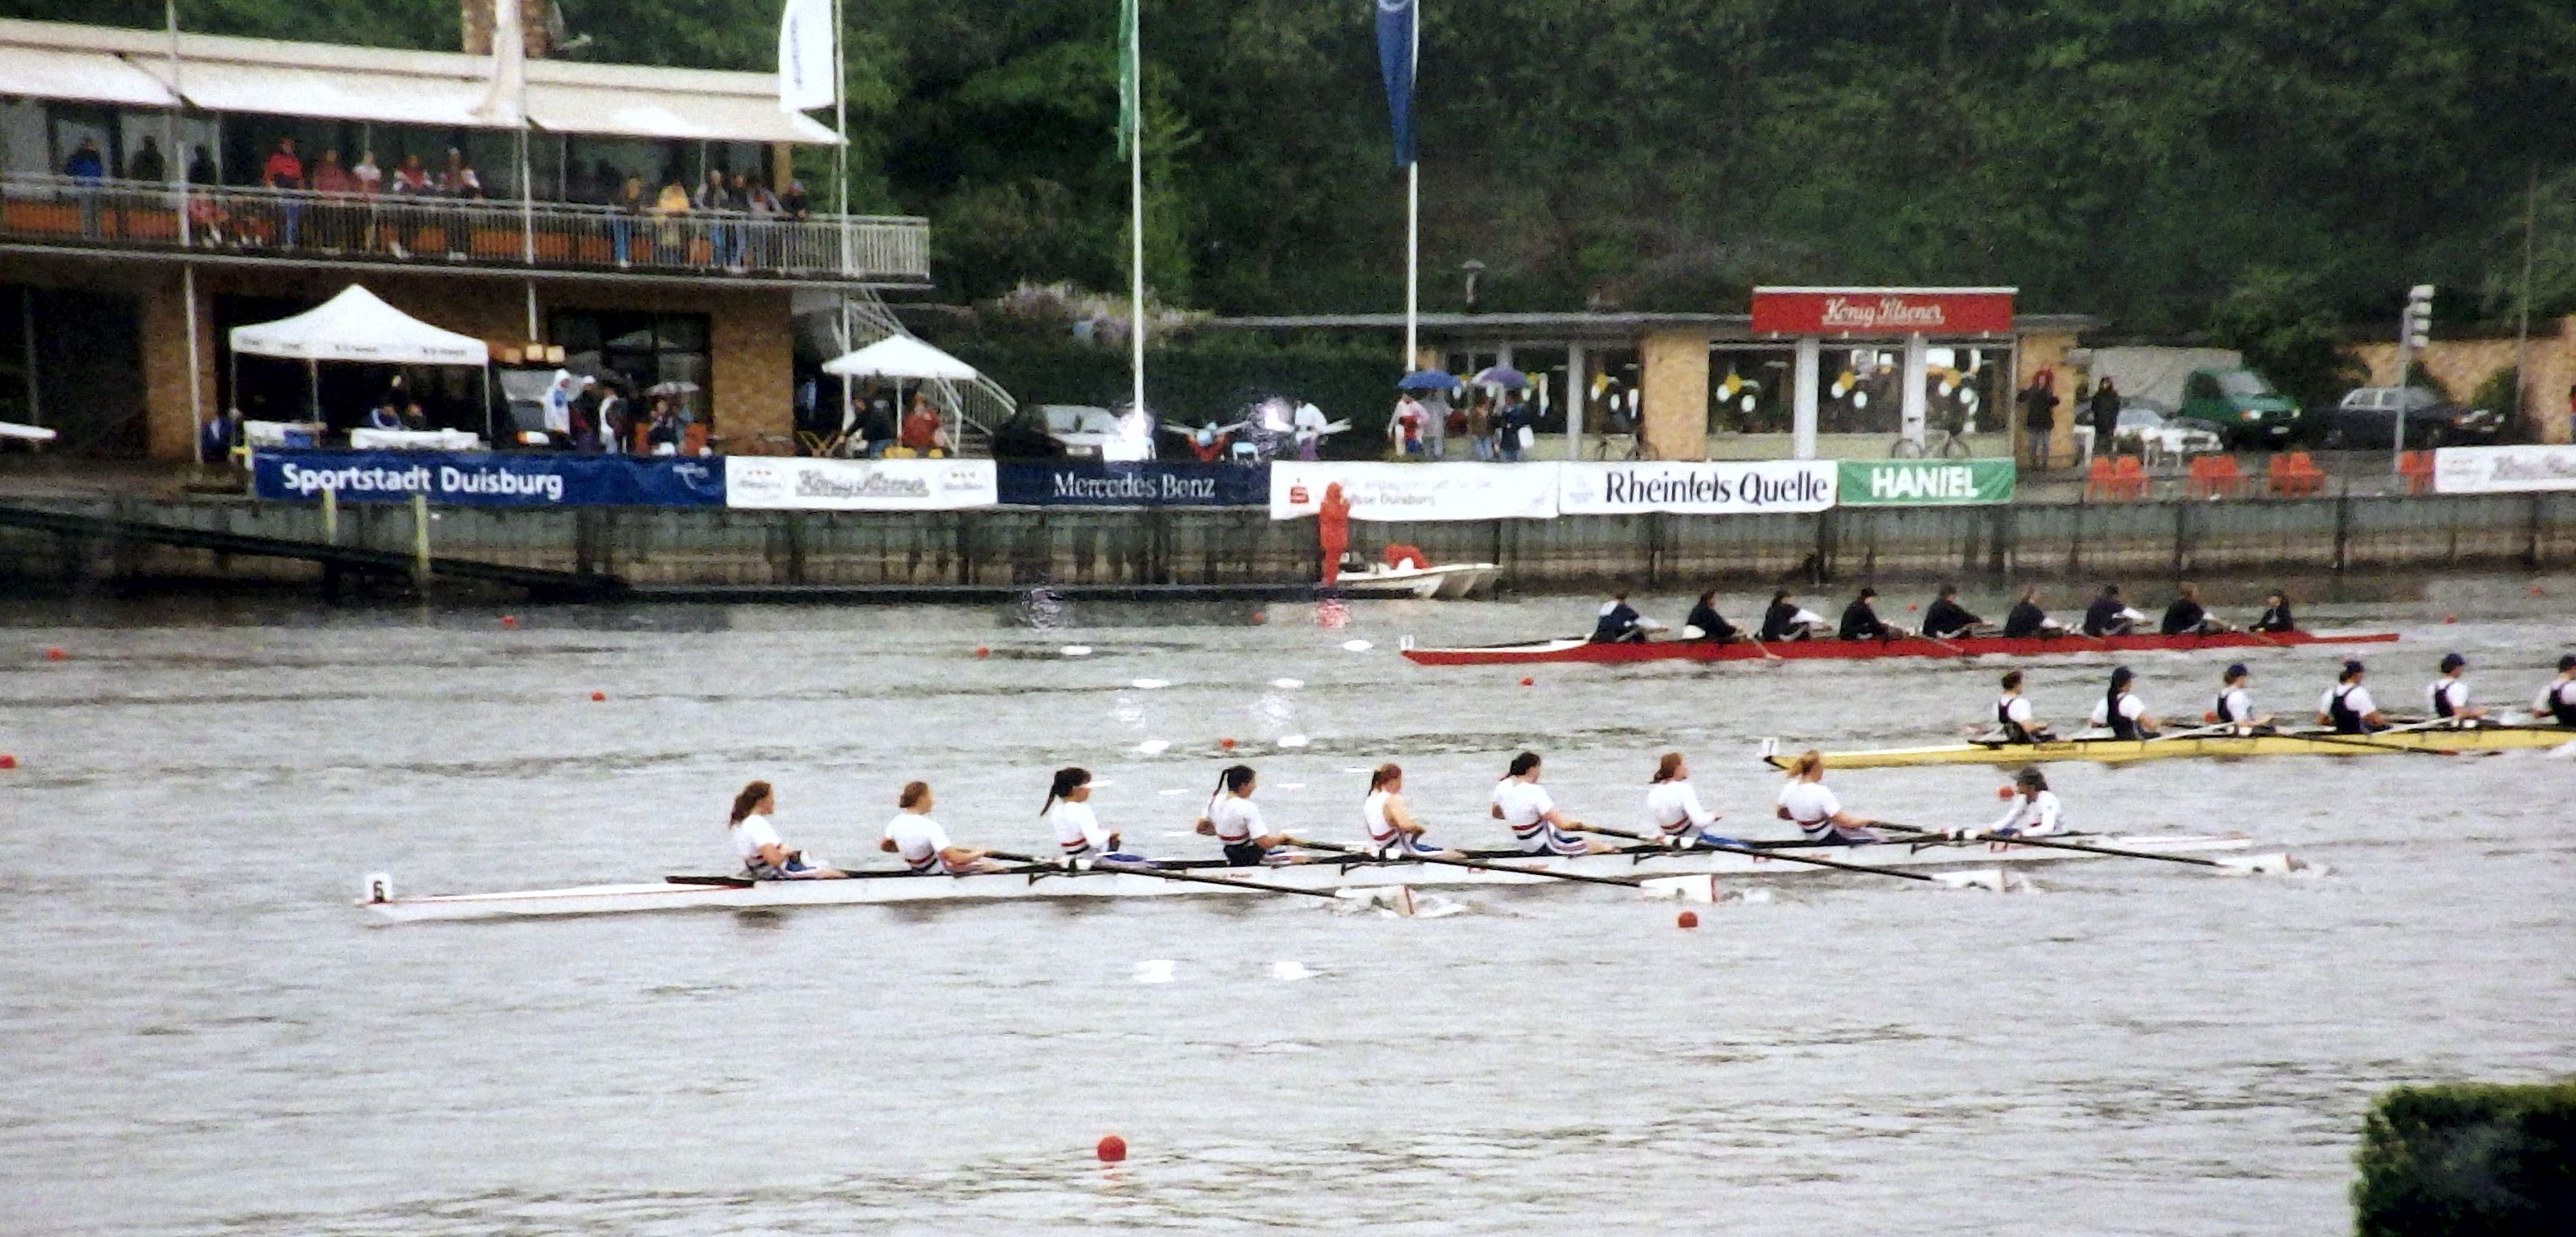 Women's eights racing